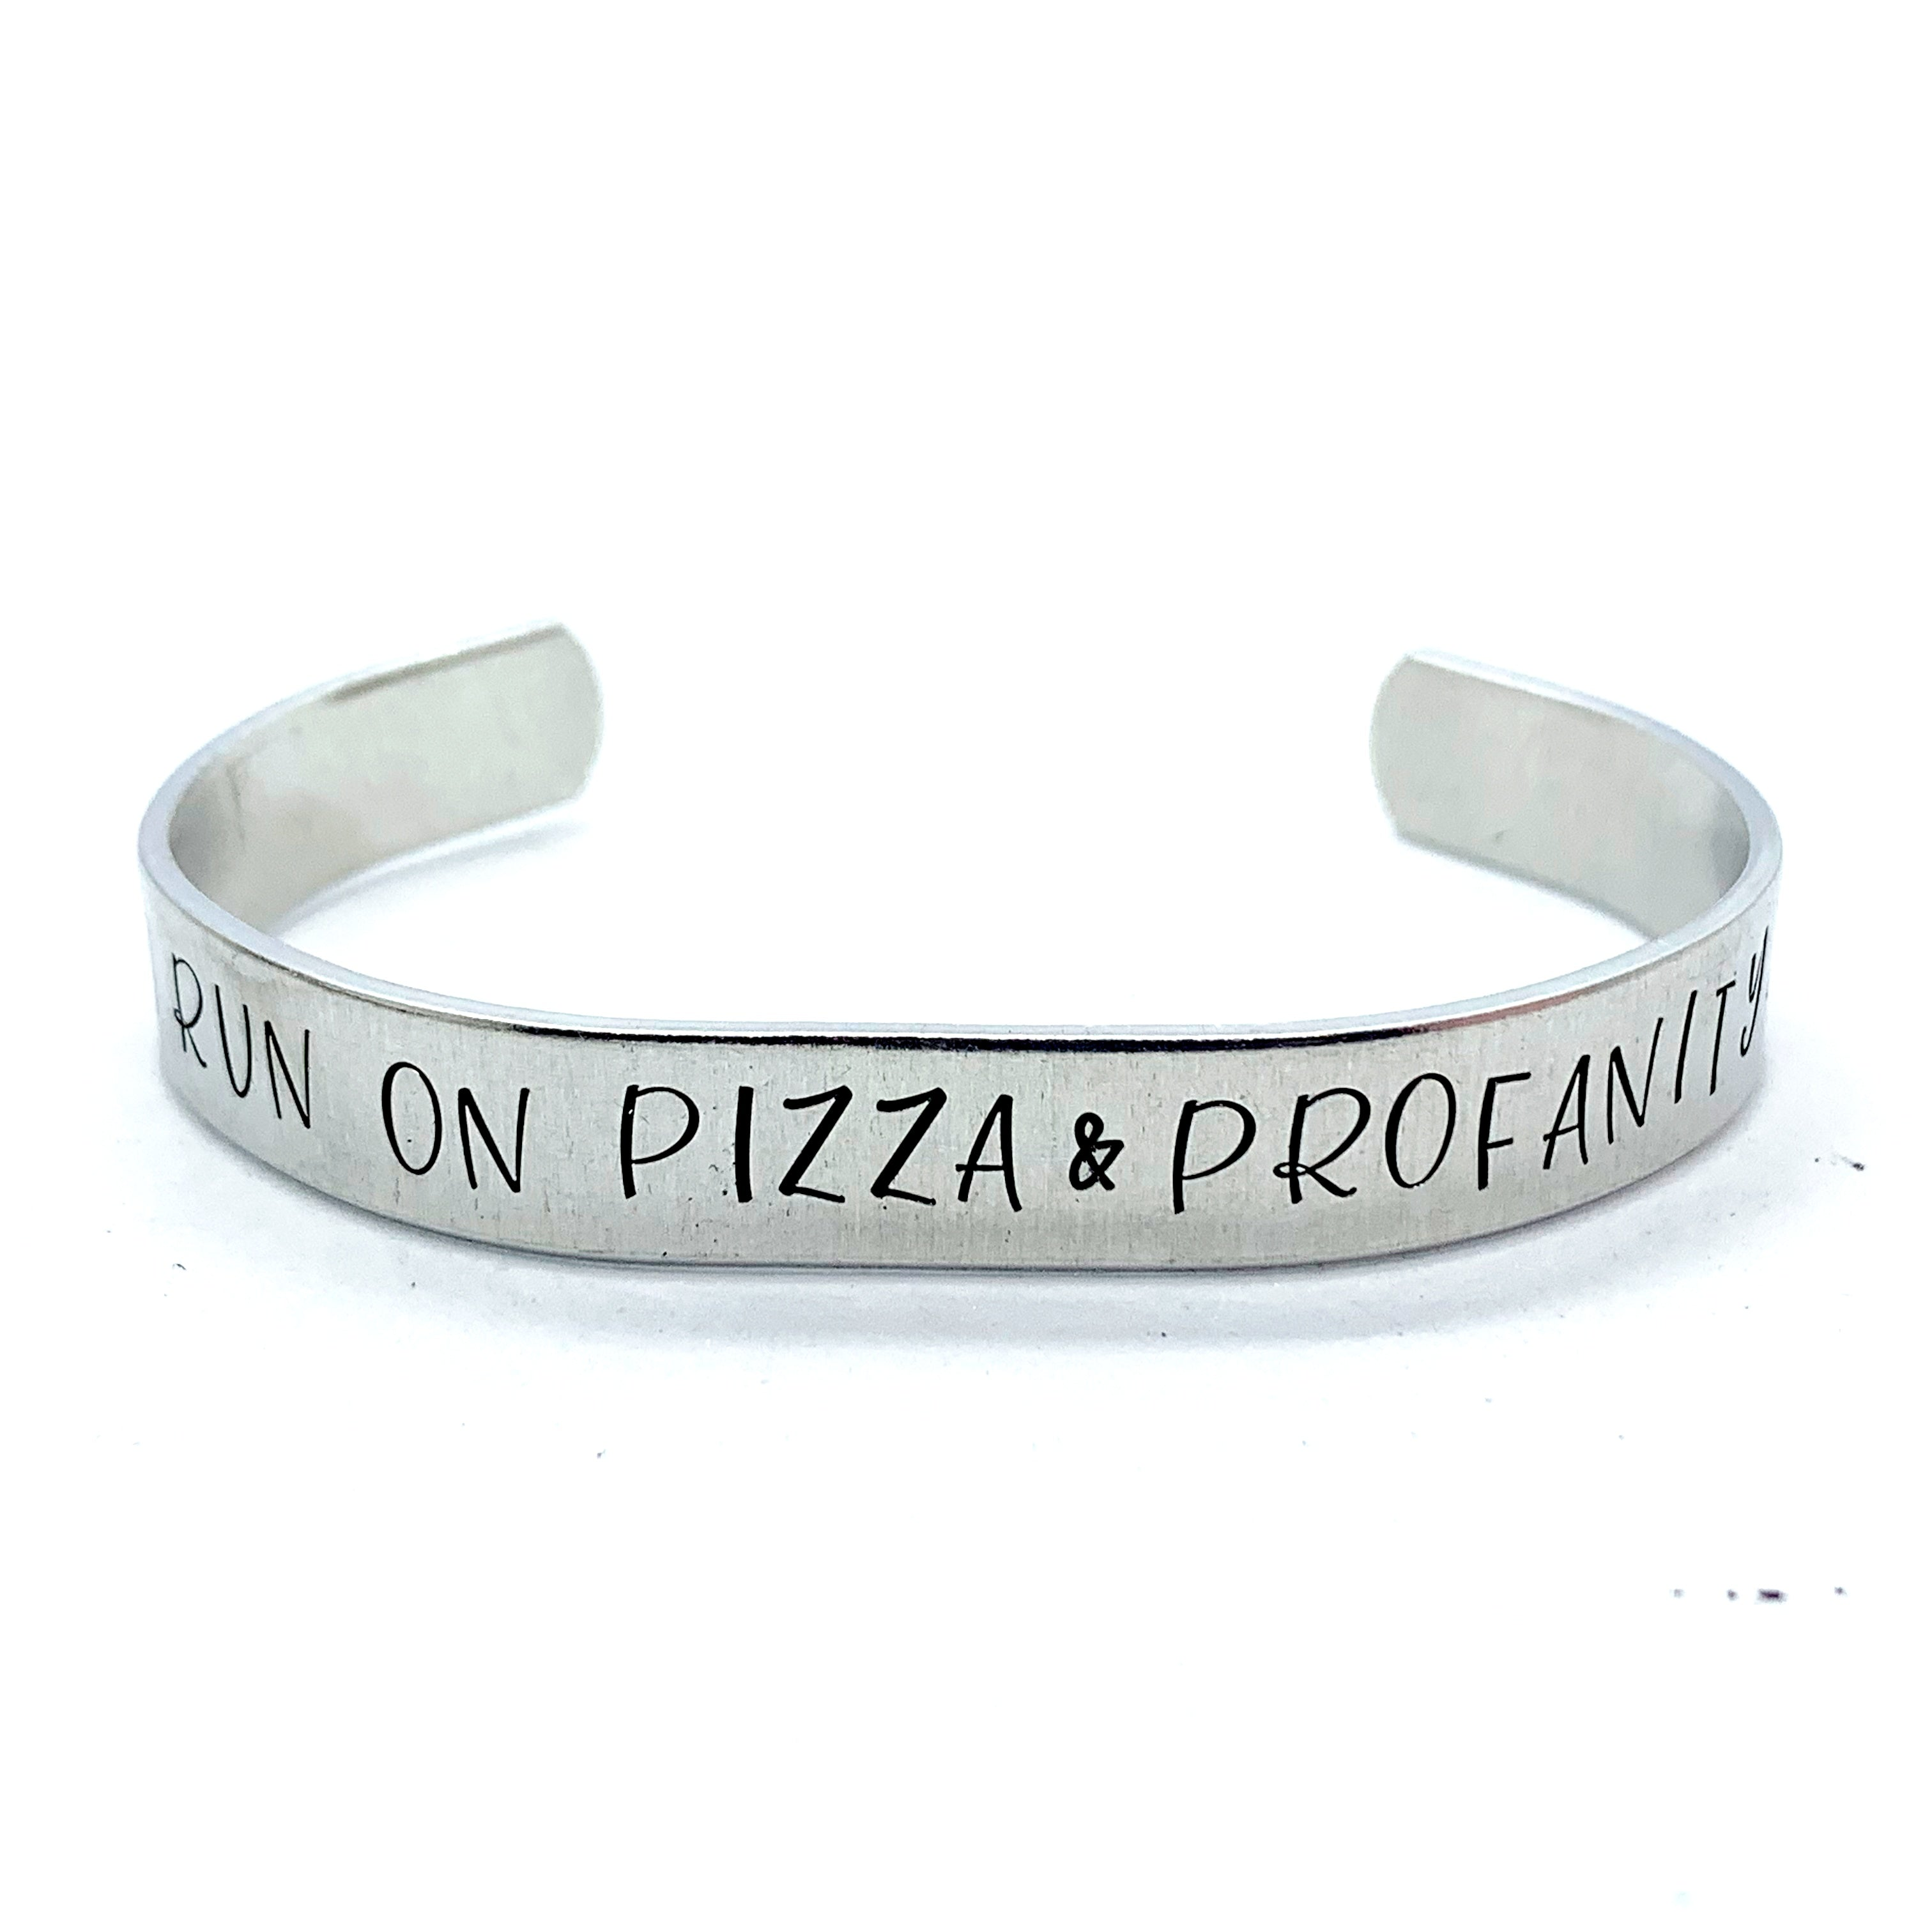 ⅜ inch Aluminum Cuff - I Run On Pizza & Profanity